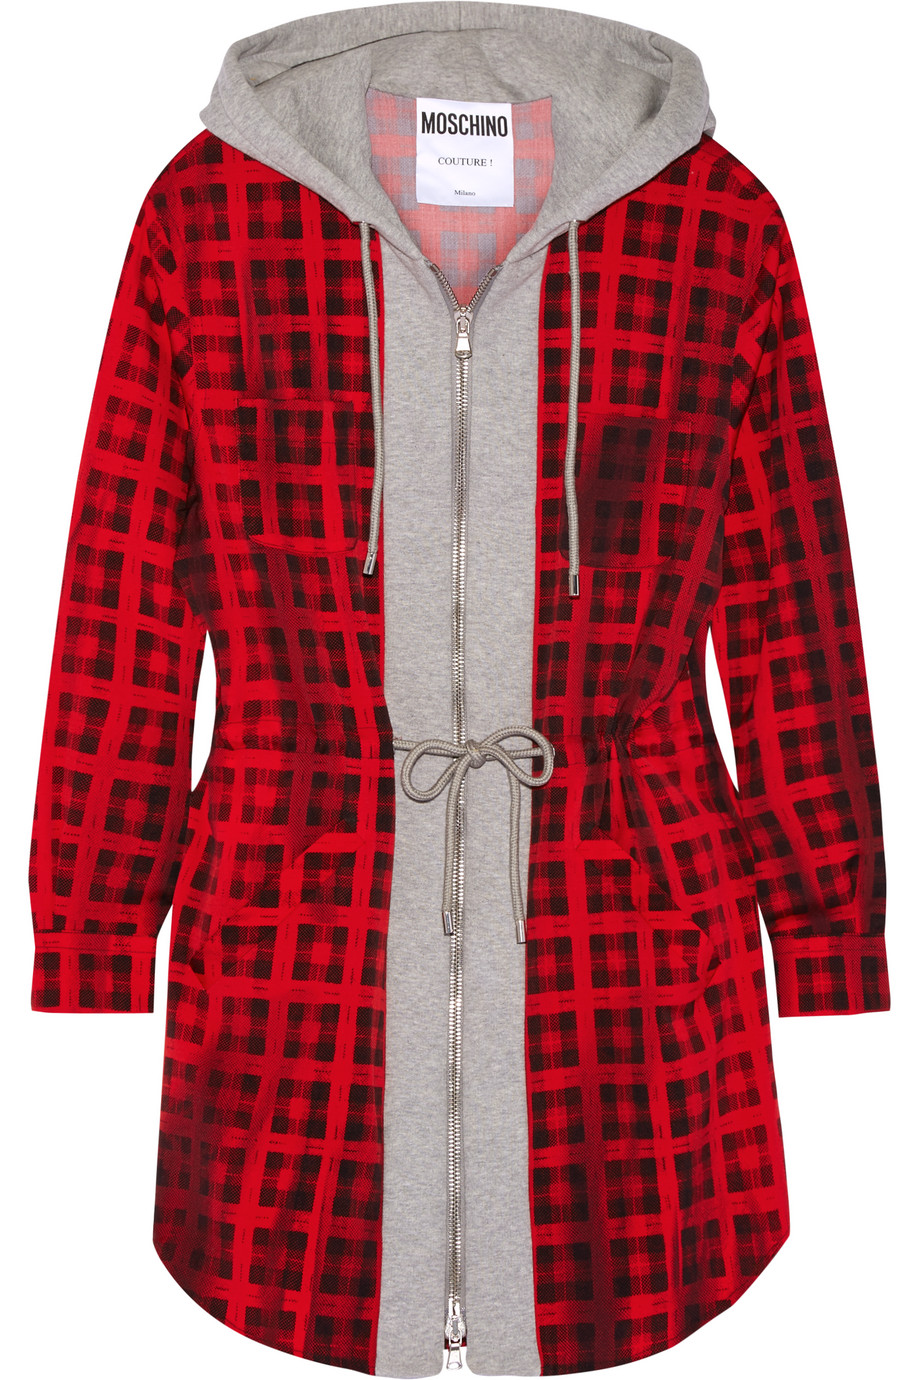 Moschino Hooded Checked Wool-Blend and Cotton-Jersey Mini Dress, Red, Women's - Checked, Size: 44